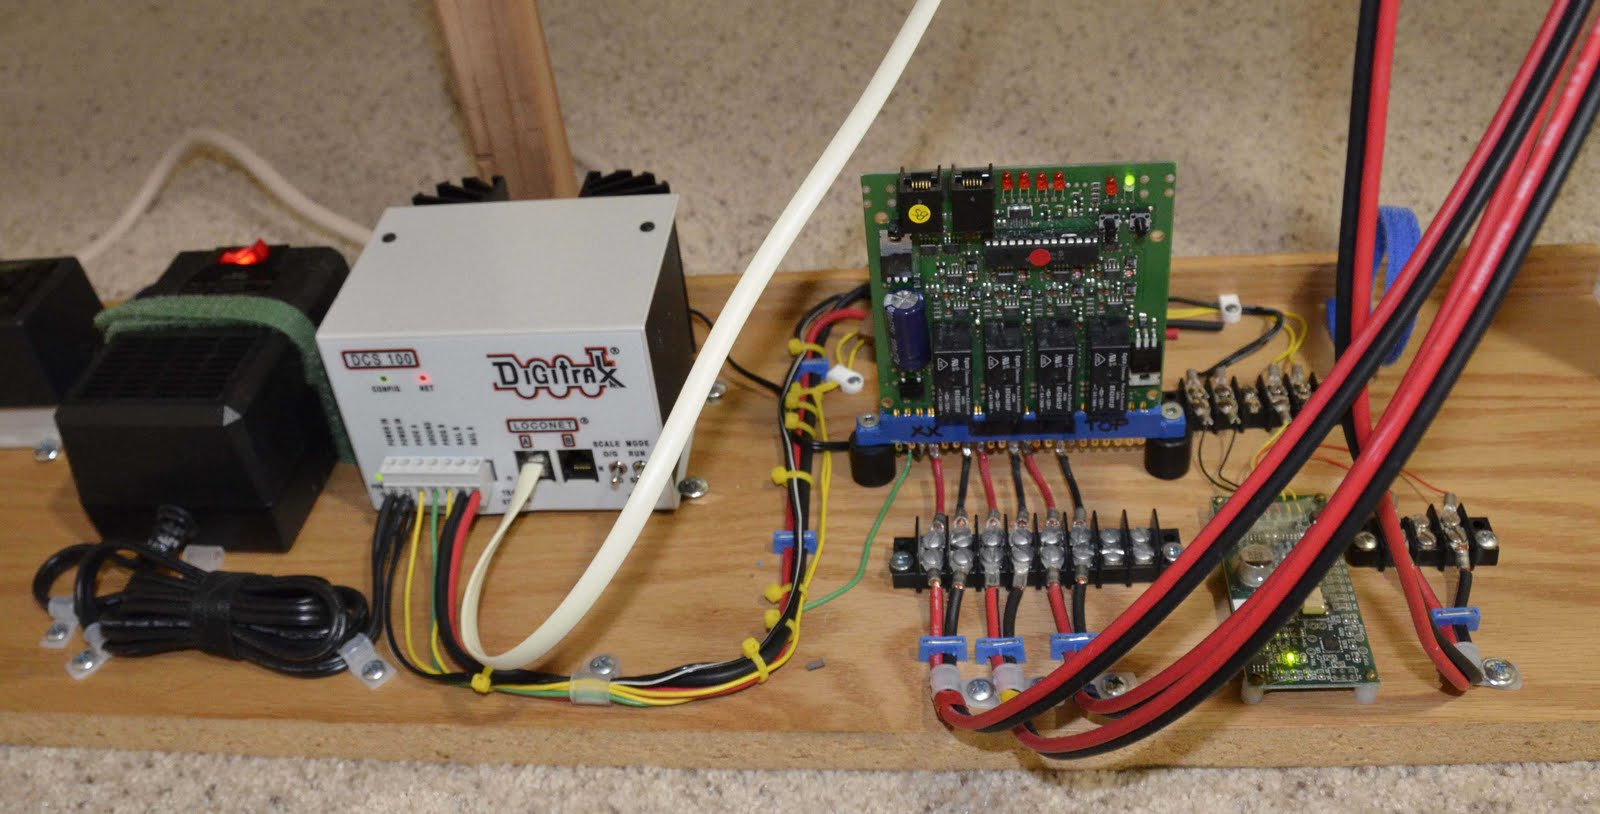 fear of the unknown aka dcc trainboard com the internet s although the wiring for this looks complex it s not i just followed the digitrax instructions and got it right the very first time